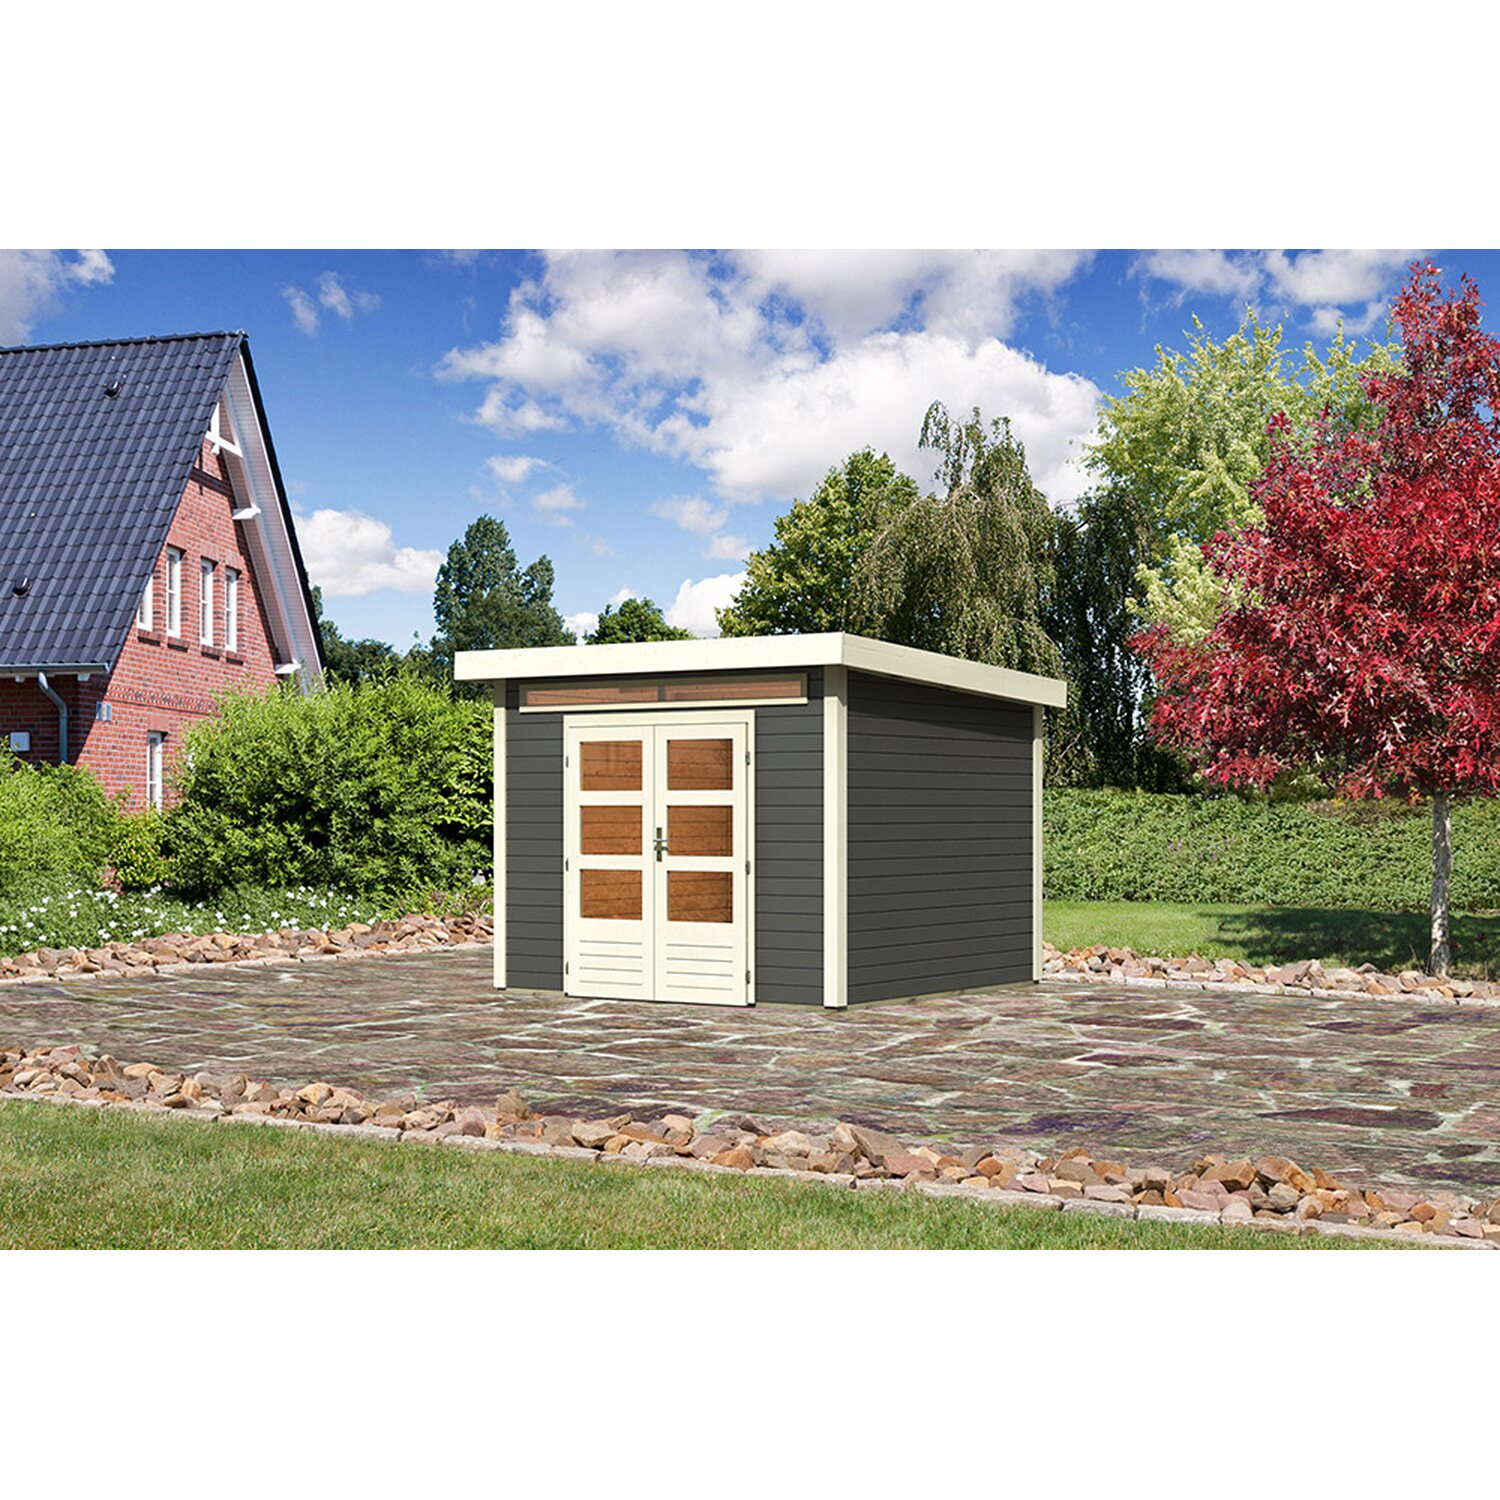 karibu holz gartenhaus luzern 2 terragrau mit boden u dachfolie bxt 270x270cm kaufen bei obi. Black Bedroom Furniture Sets. Home Design Ideas